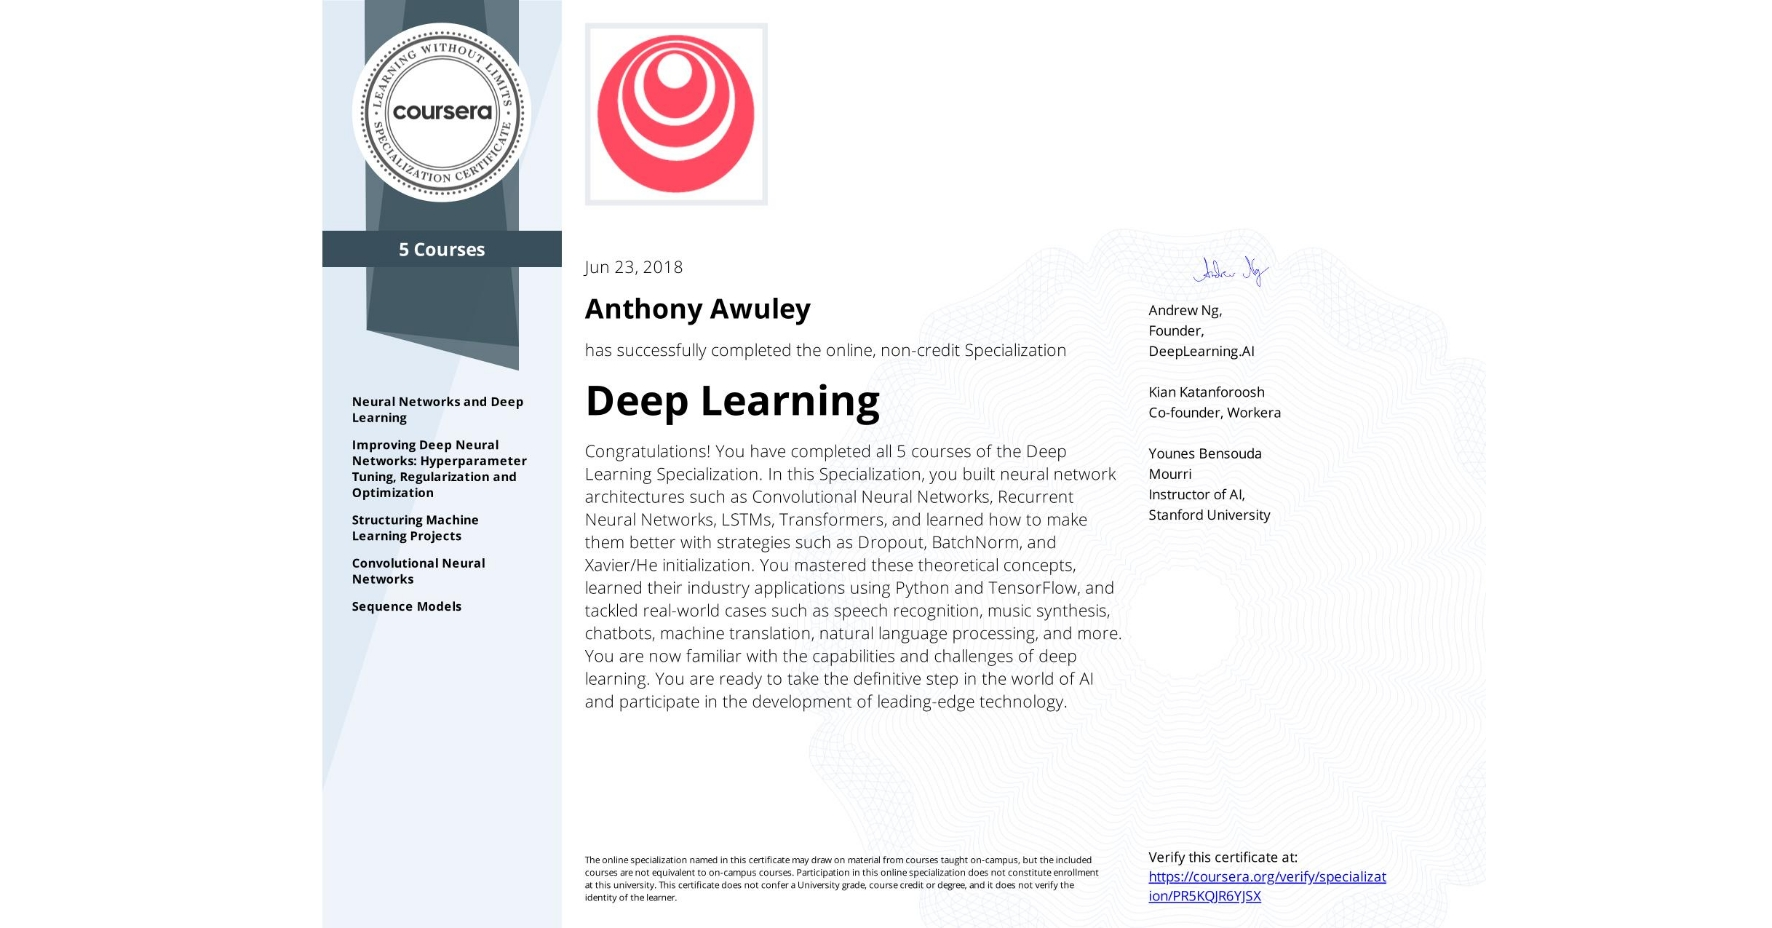 View certificate for Anthony Awuley, Deep Learning, offered through Coursera. The Deep Learning Specialization is designed to prepare learners to participate in the development of cutting-edge AI technology, and to understand the capability, the challenges, and the consequences of the rise of deep learning. Through five interconnected courses, learners develop a profound knowledge of the hottest AI algorithms, mastering deep learning from its foundations (neural networks) to its industry applications (Computer Vision, Natural Language Processing, Speech Recognition, etc.).